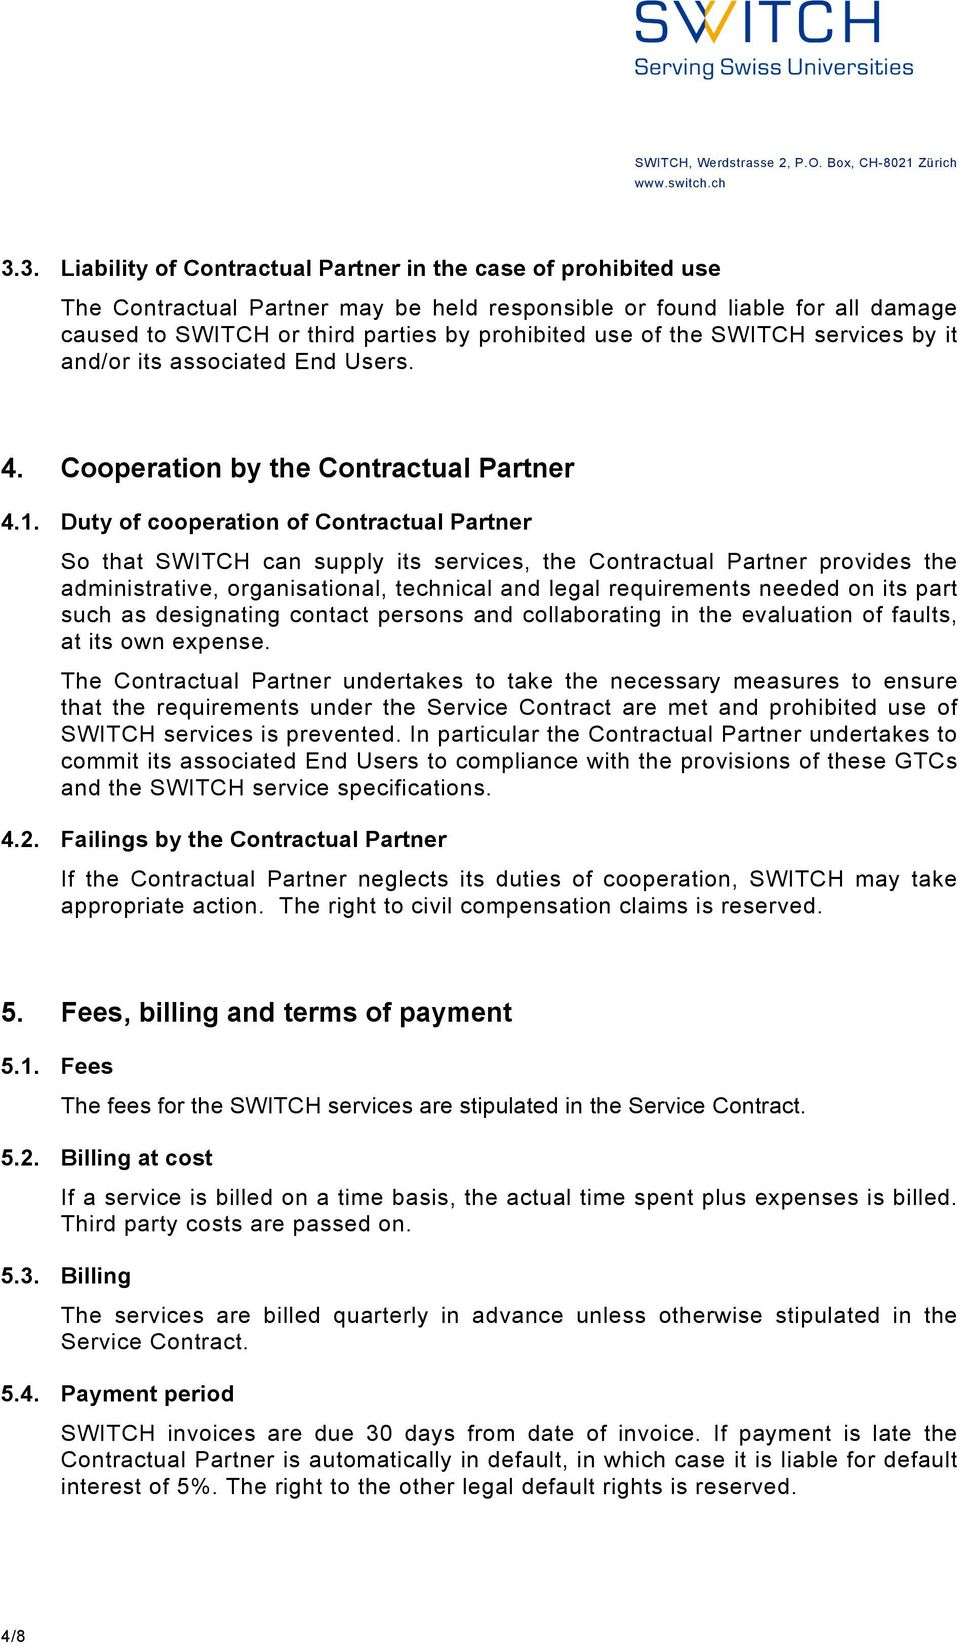 Duty of cooperation of Contractual Partner So that SWITCH can supply its services, the Contractual Partner provides the administrative, organisational, technical and legal requirements needed on its